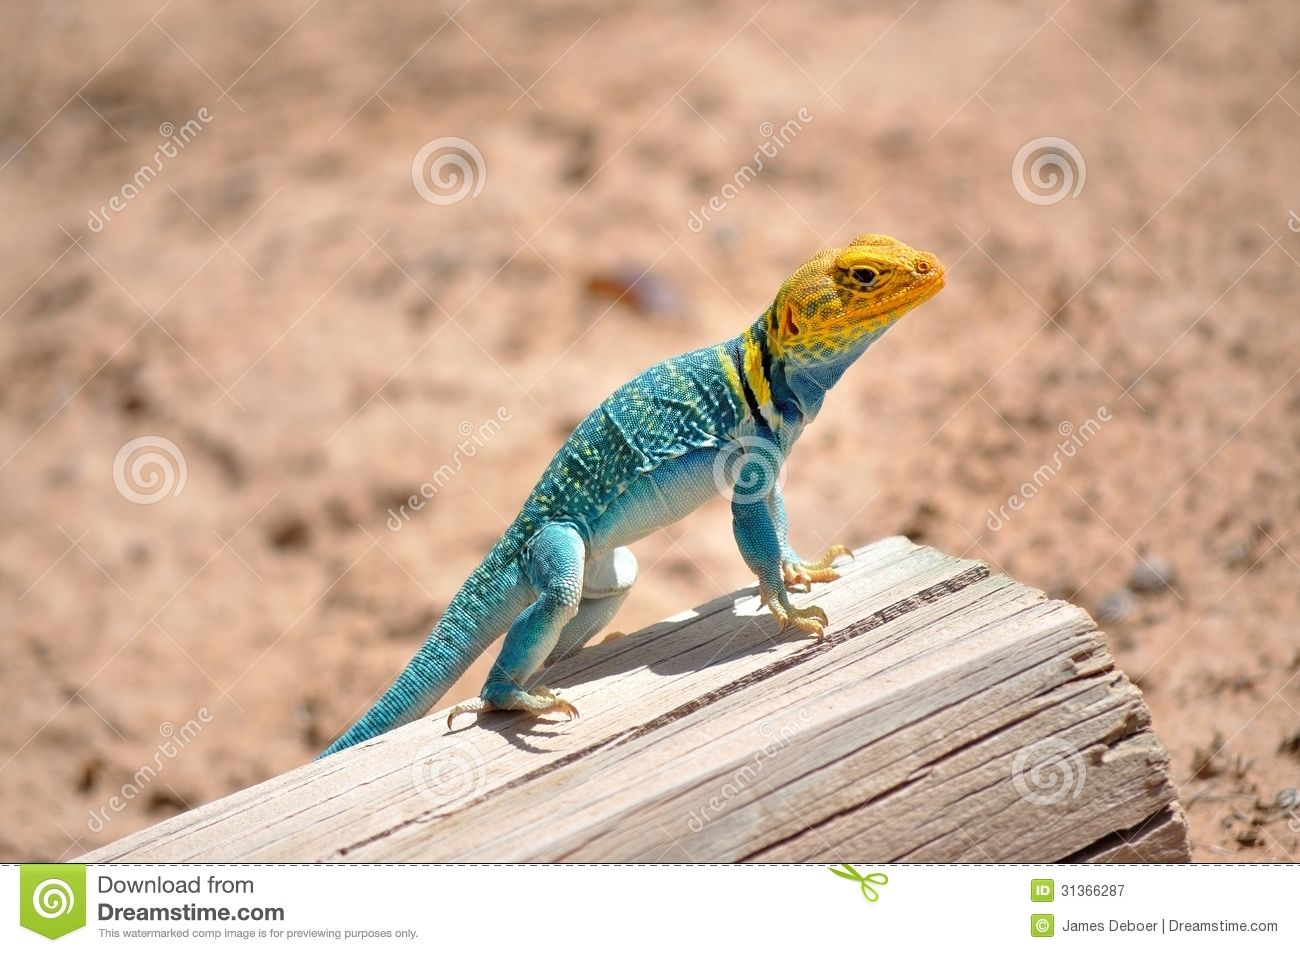 Eastern Collared Lizard clipart #12, Download drawings